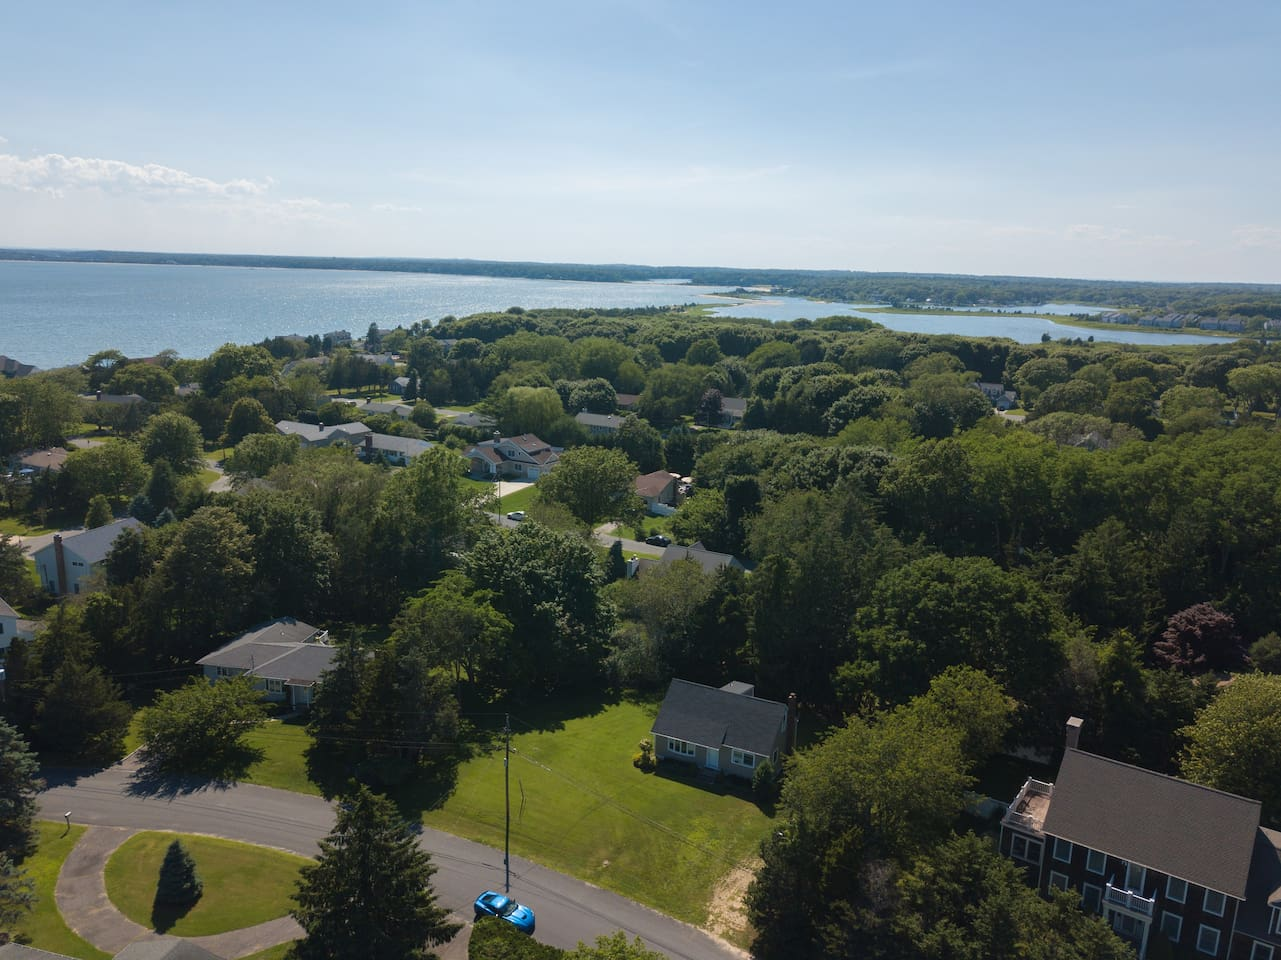 Aerial view of the location of our house, (center foreground), surrounded by the waters of Shelter Bay and just a short walk to our private community sandy beach